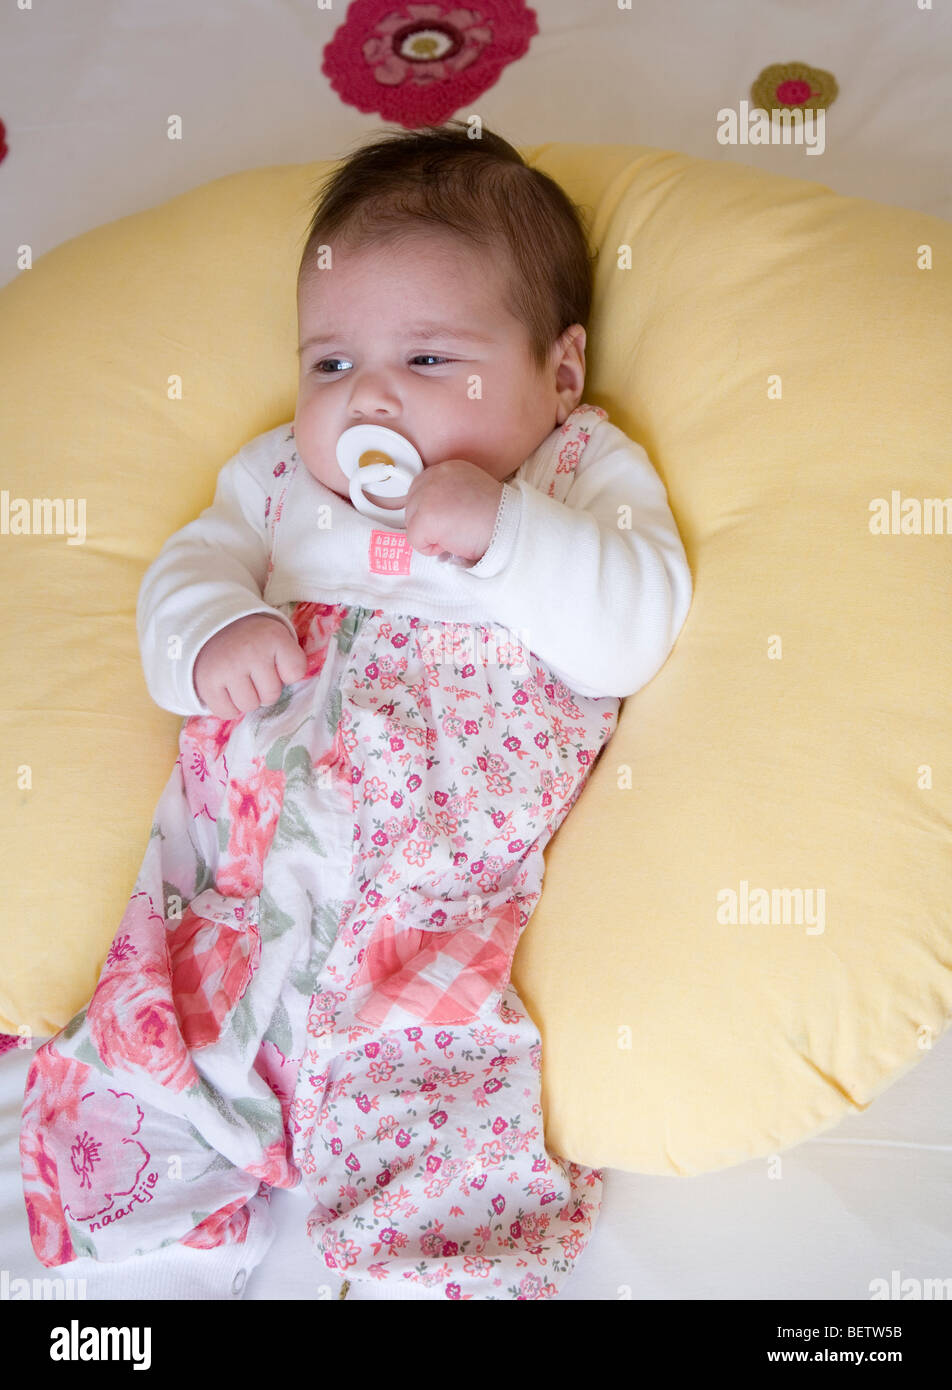 Baby sits up against a yellow support ring Stock Photo: 26362151 - Alamy